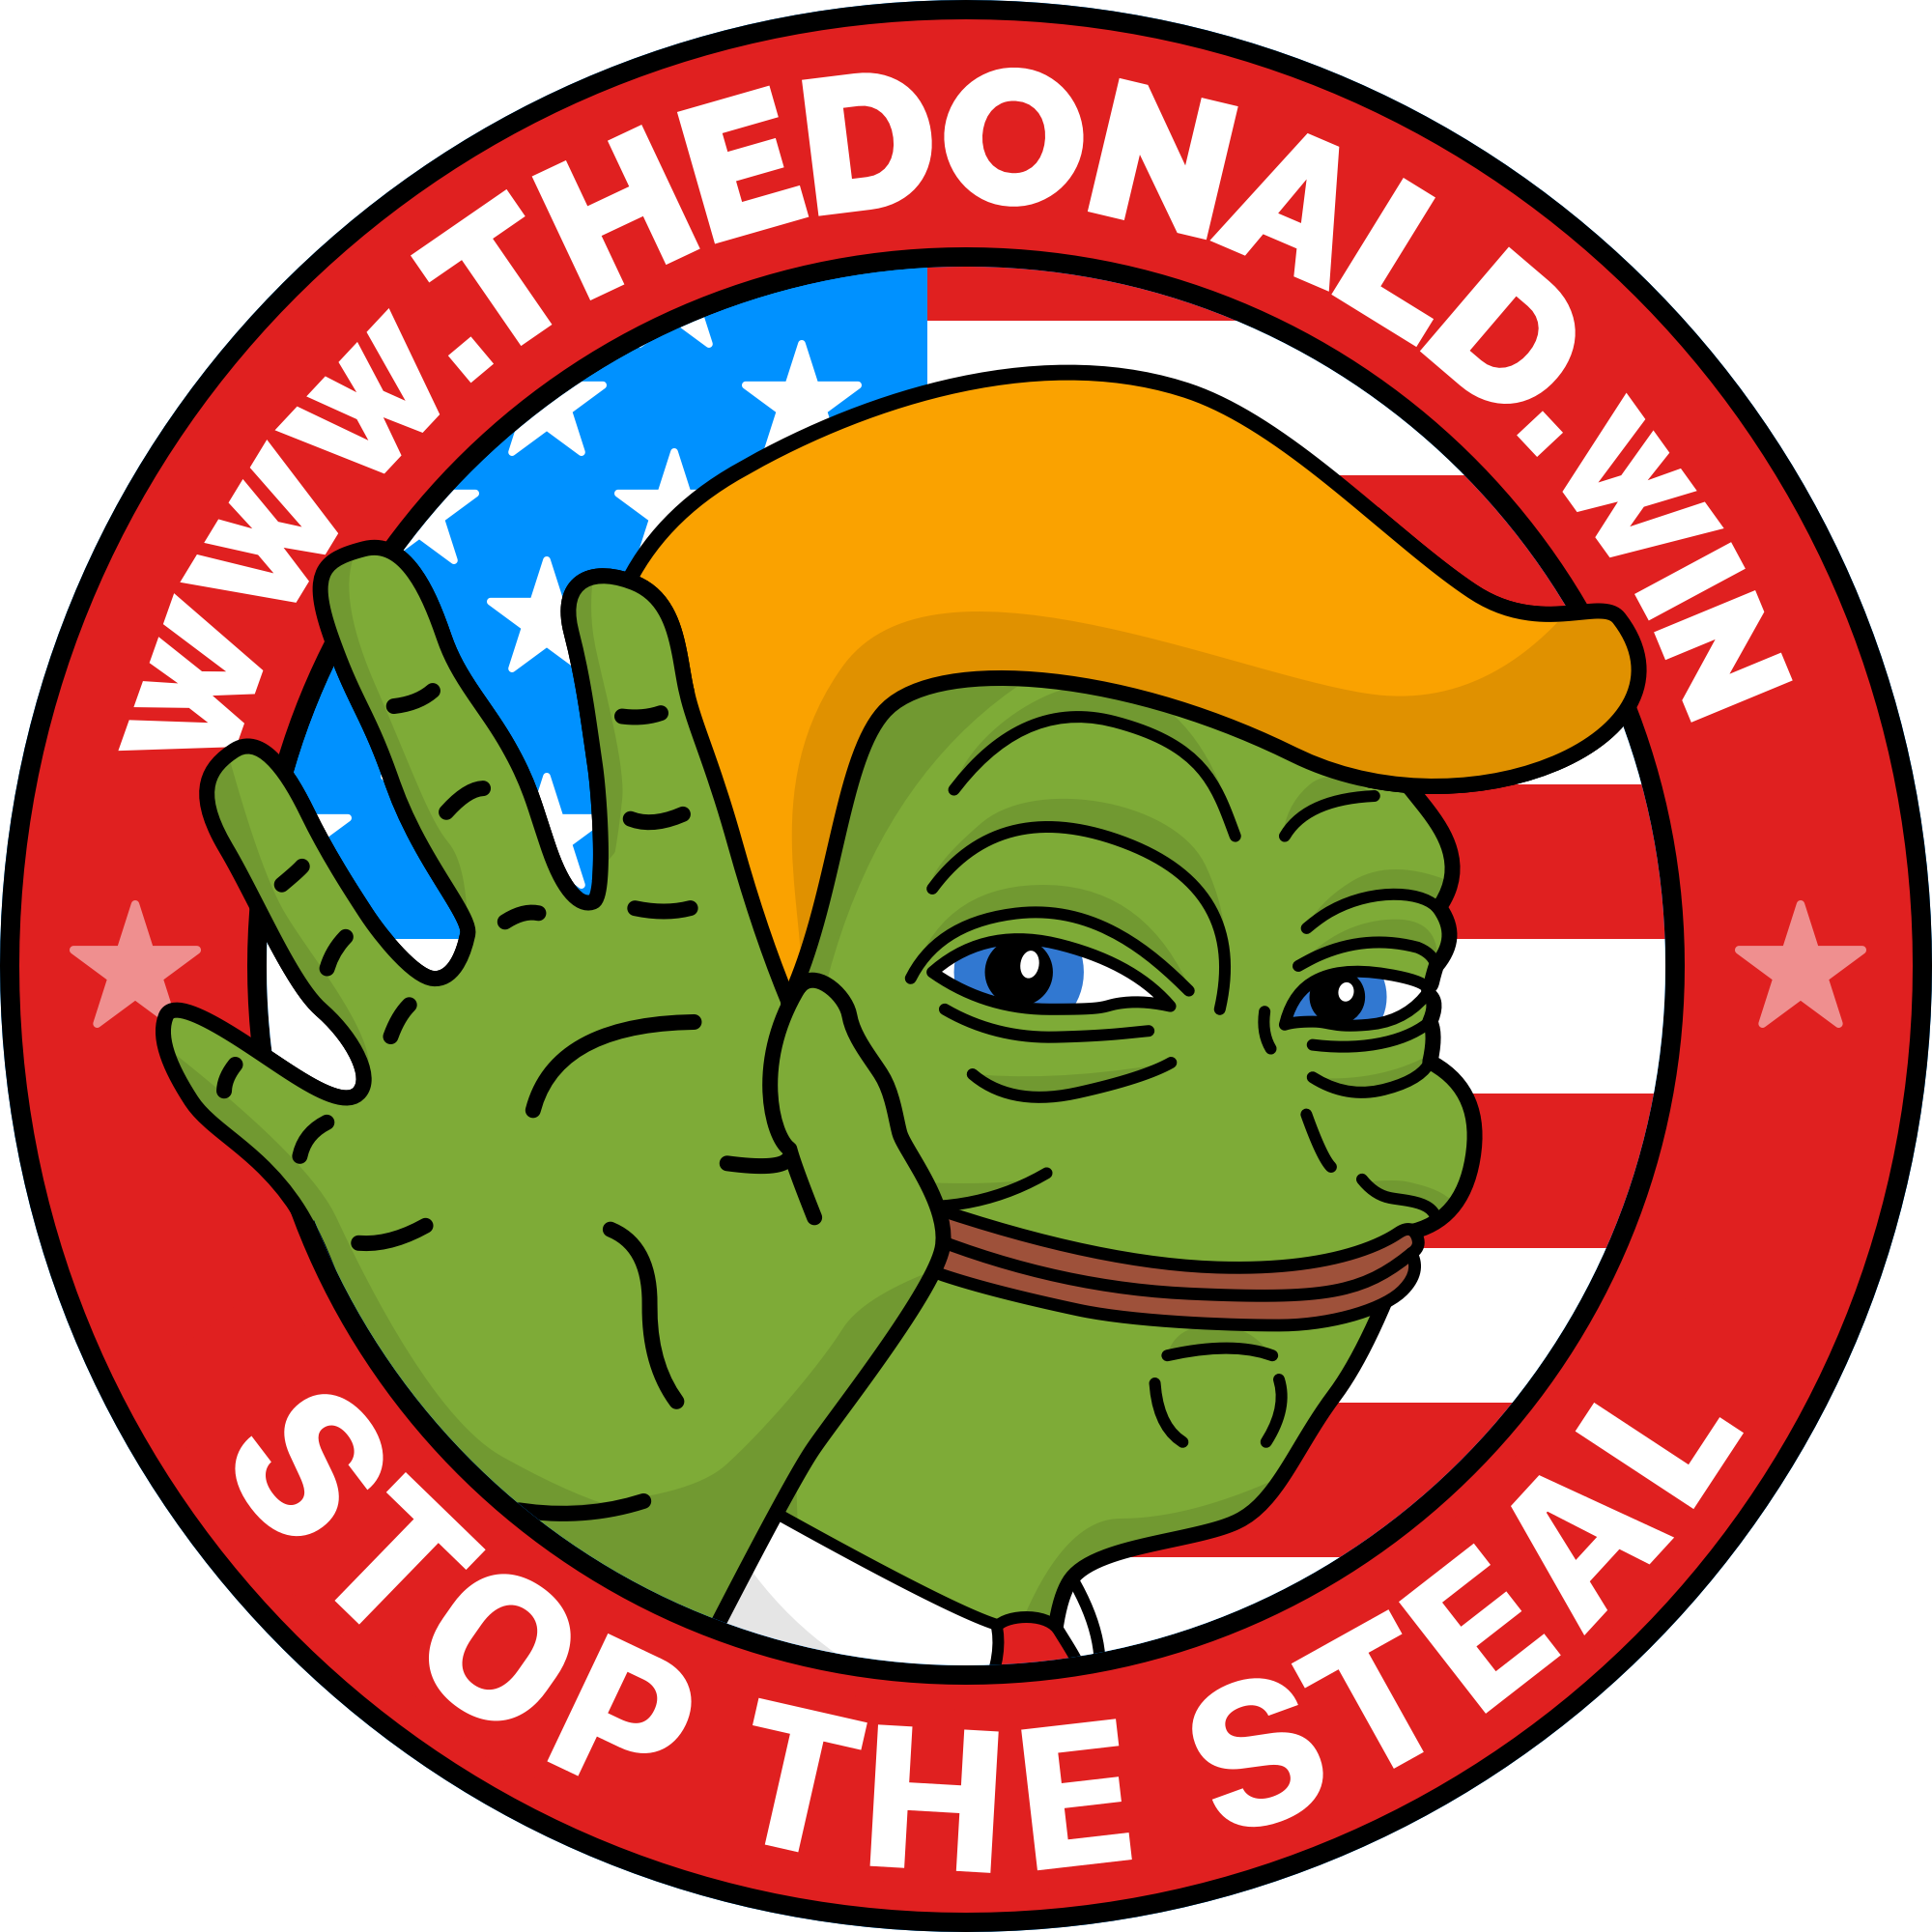 thedonald.win